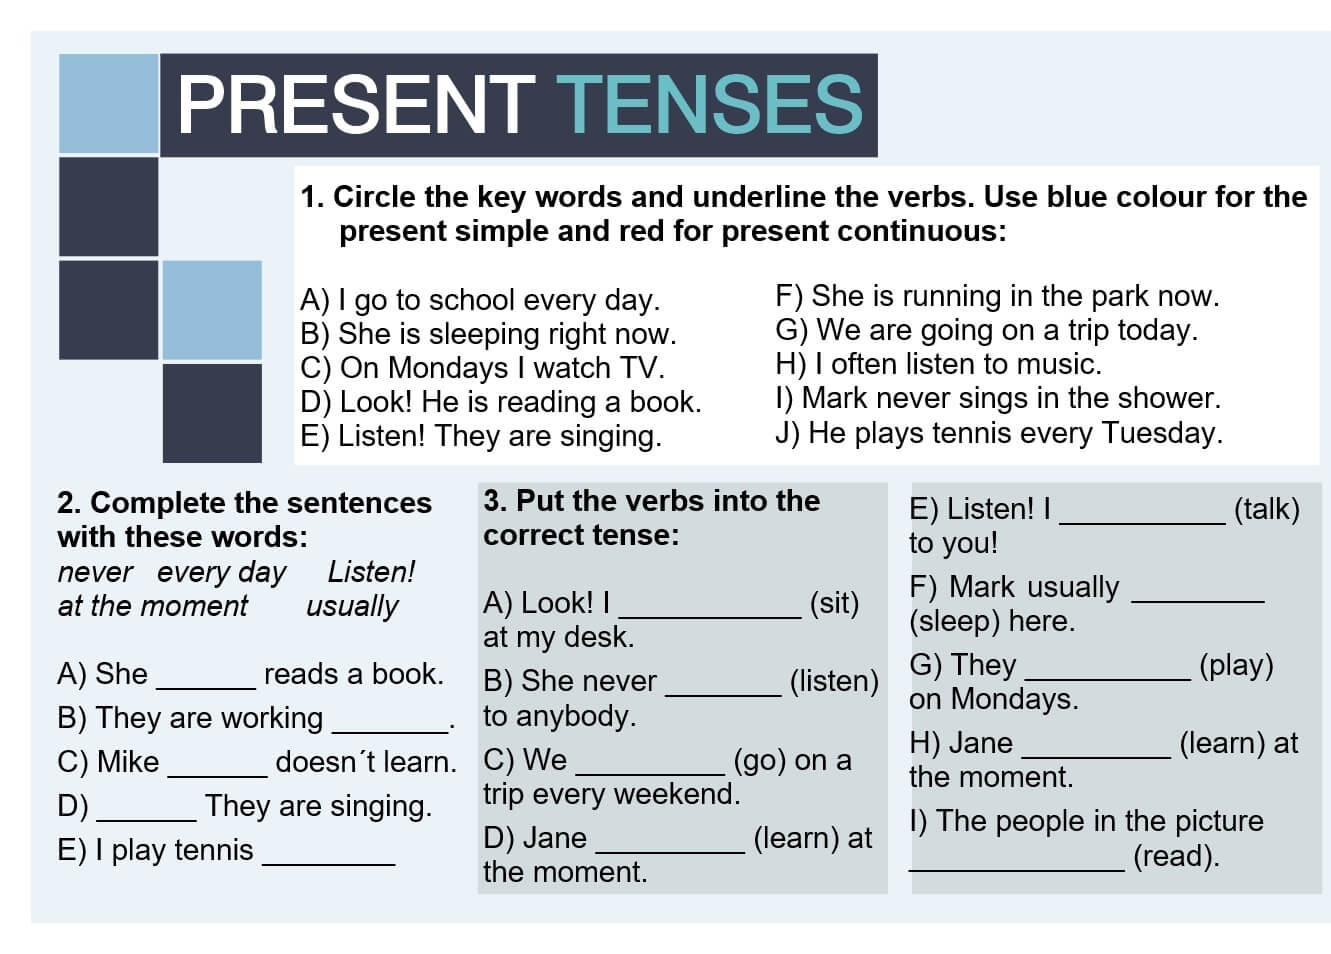 Present tenses - using keywords - Games to learn English | Games ...